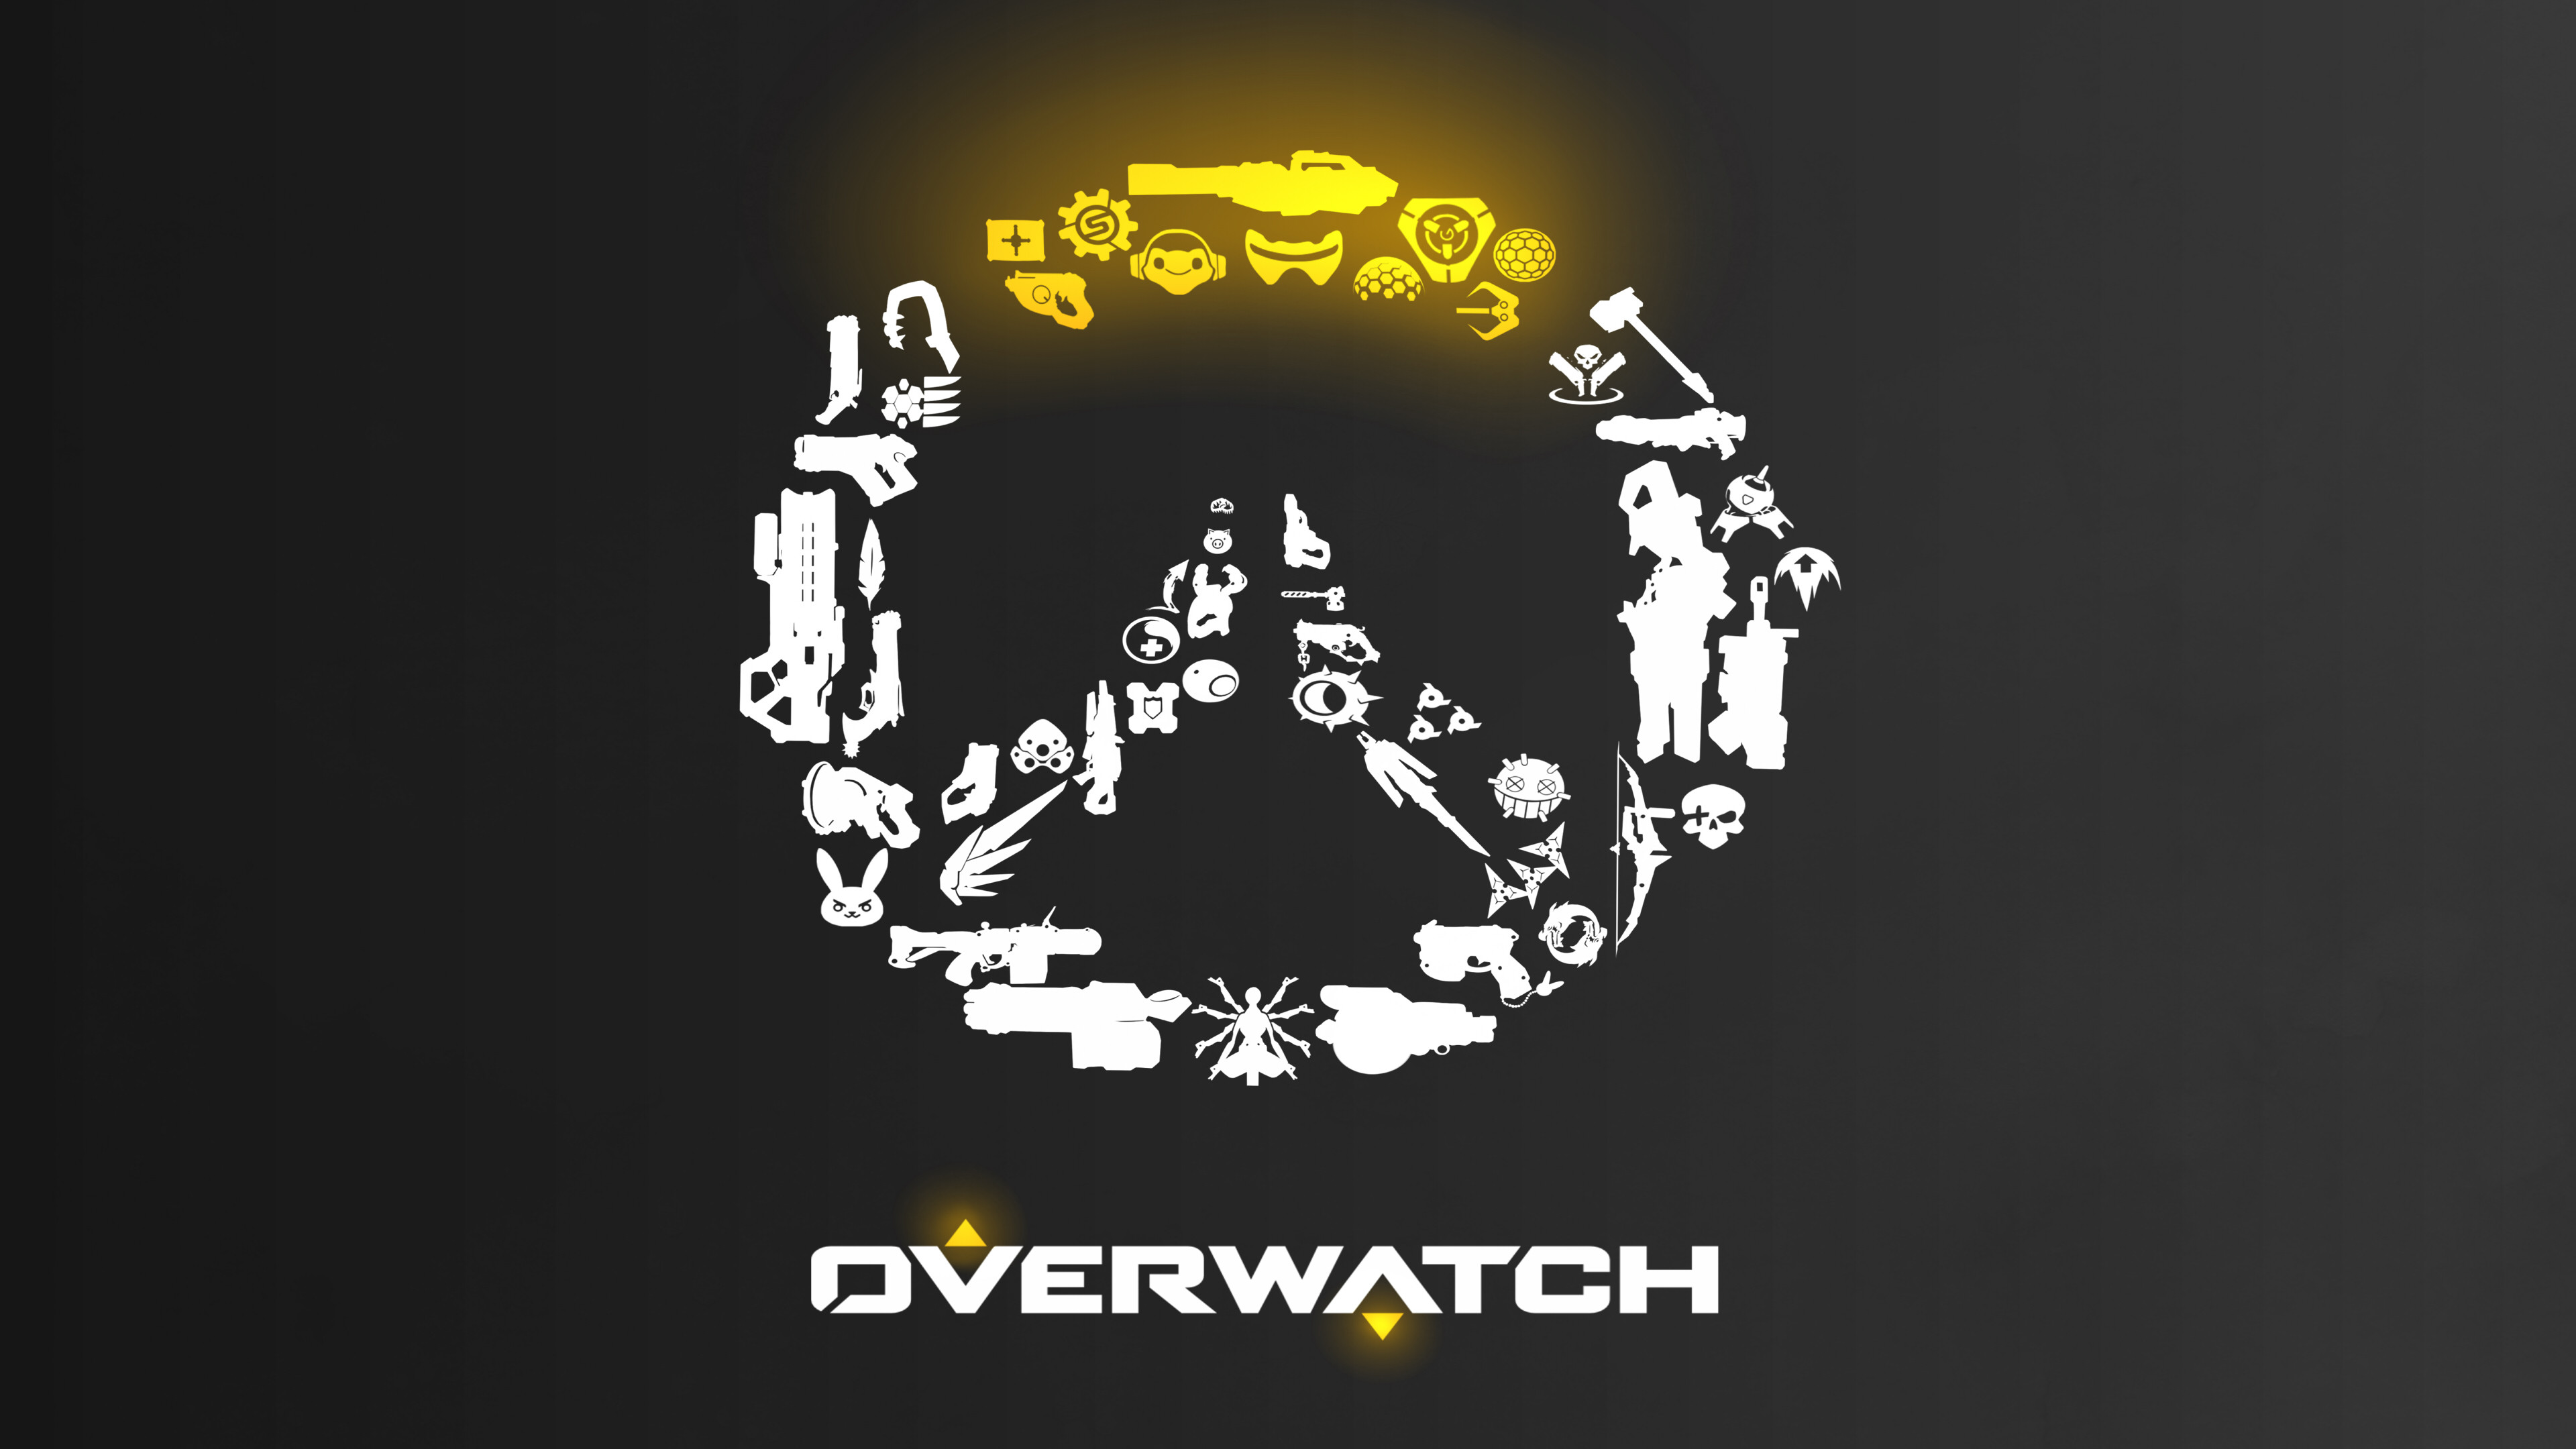 Overwatch minimalist clipart vector black and white download Overwatch minimalist clipart - ClipartFest vector black and white download